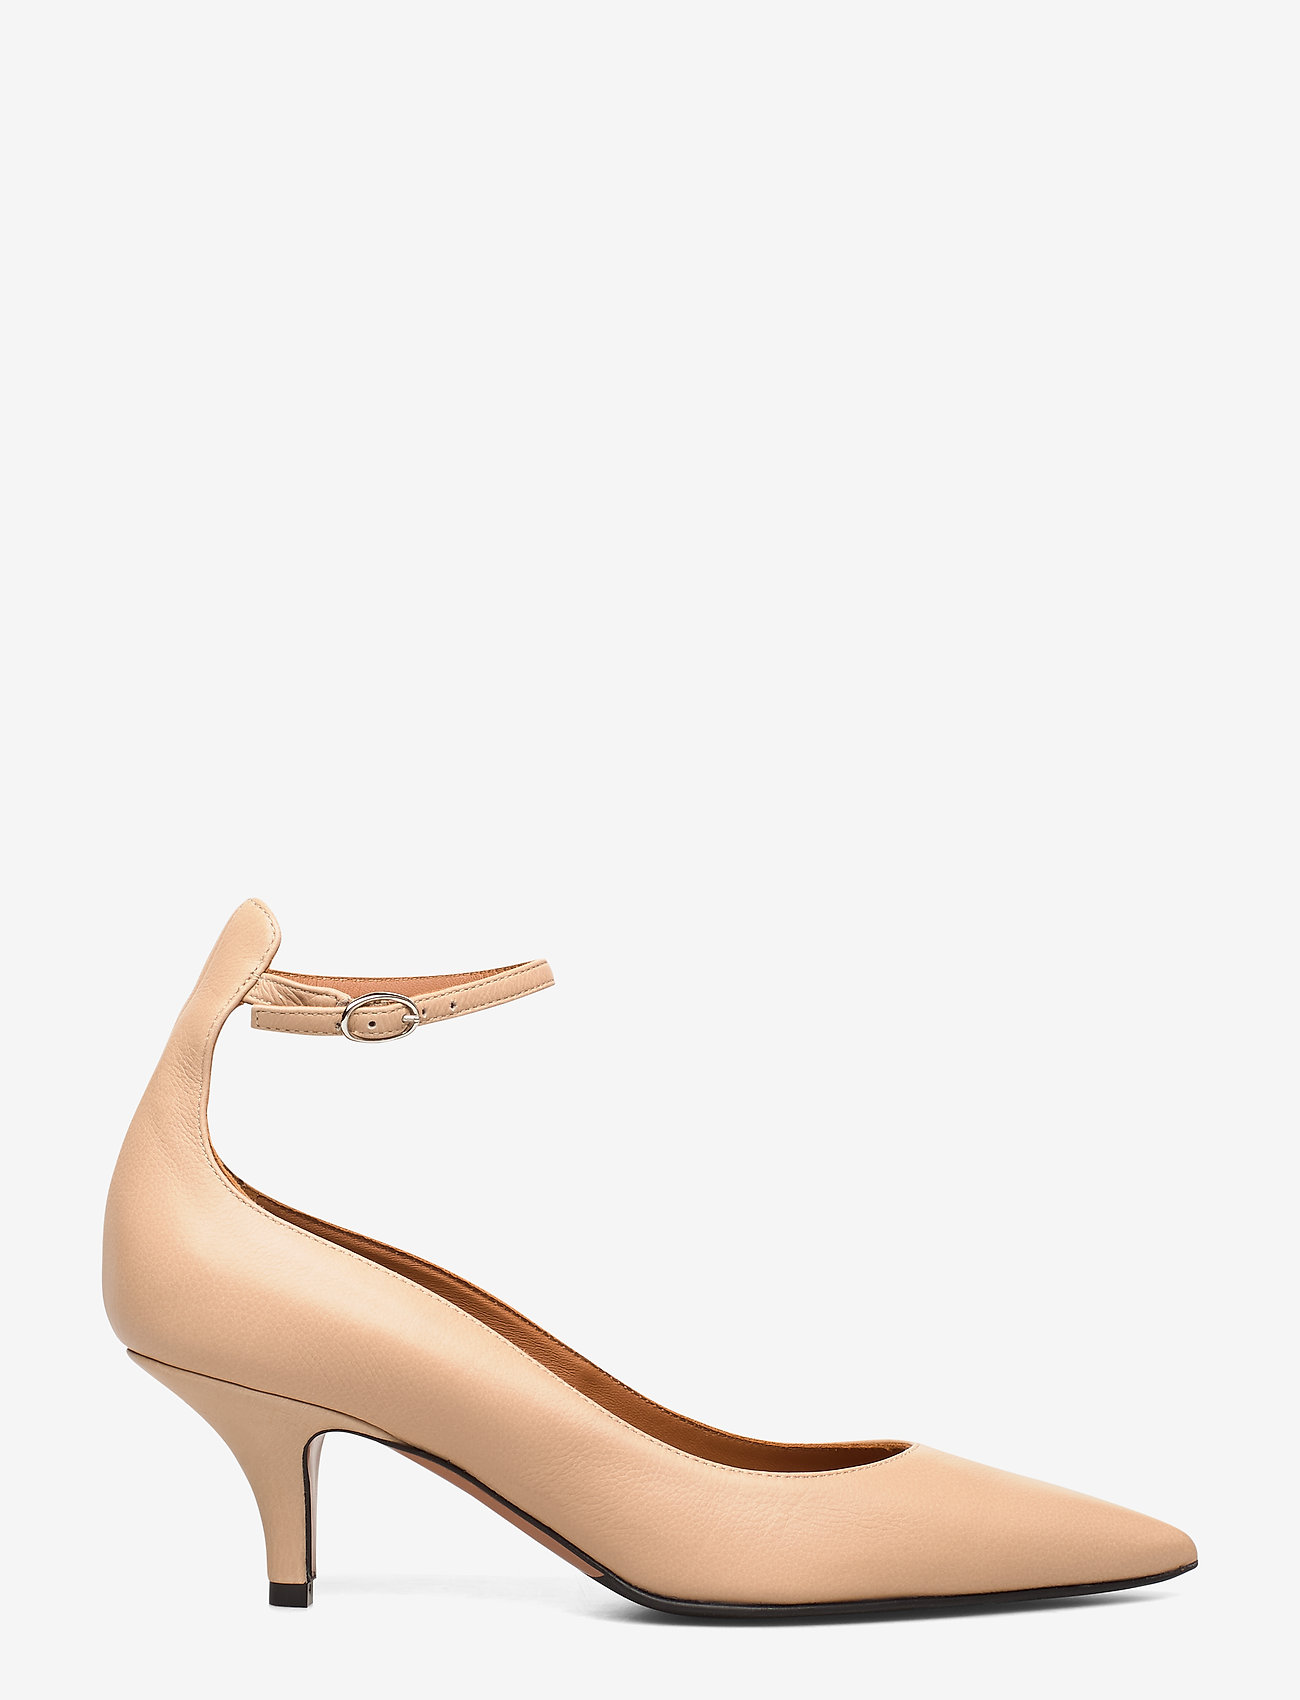 NOTABENE - Sonia - classic pumps - nude leather - 1